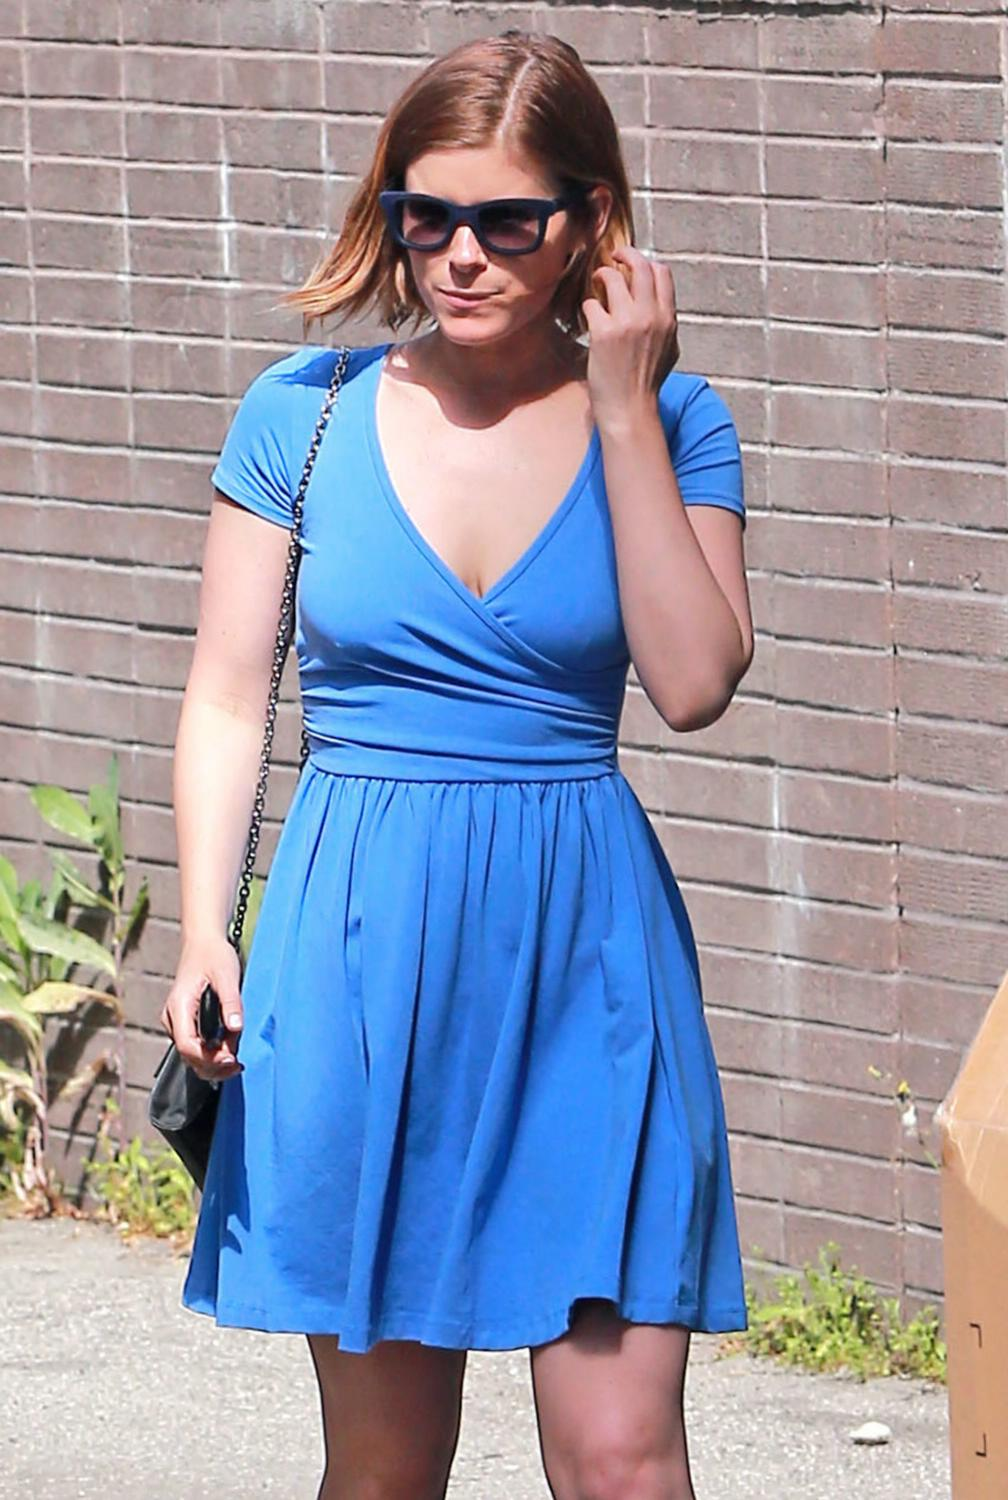 Kate Mara Leaving Hair Salon-1